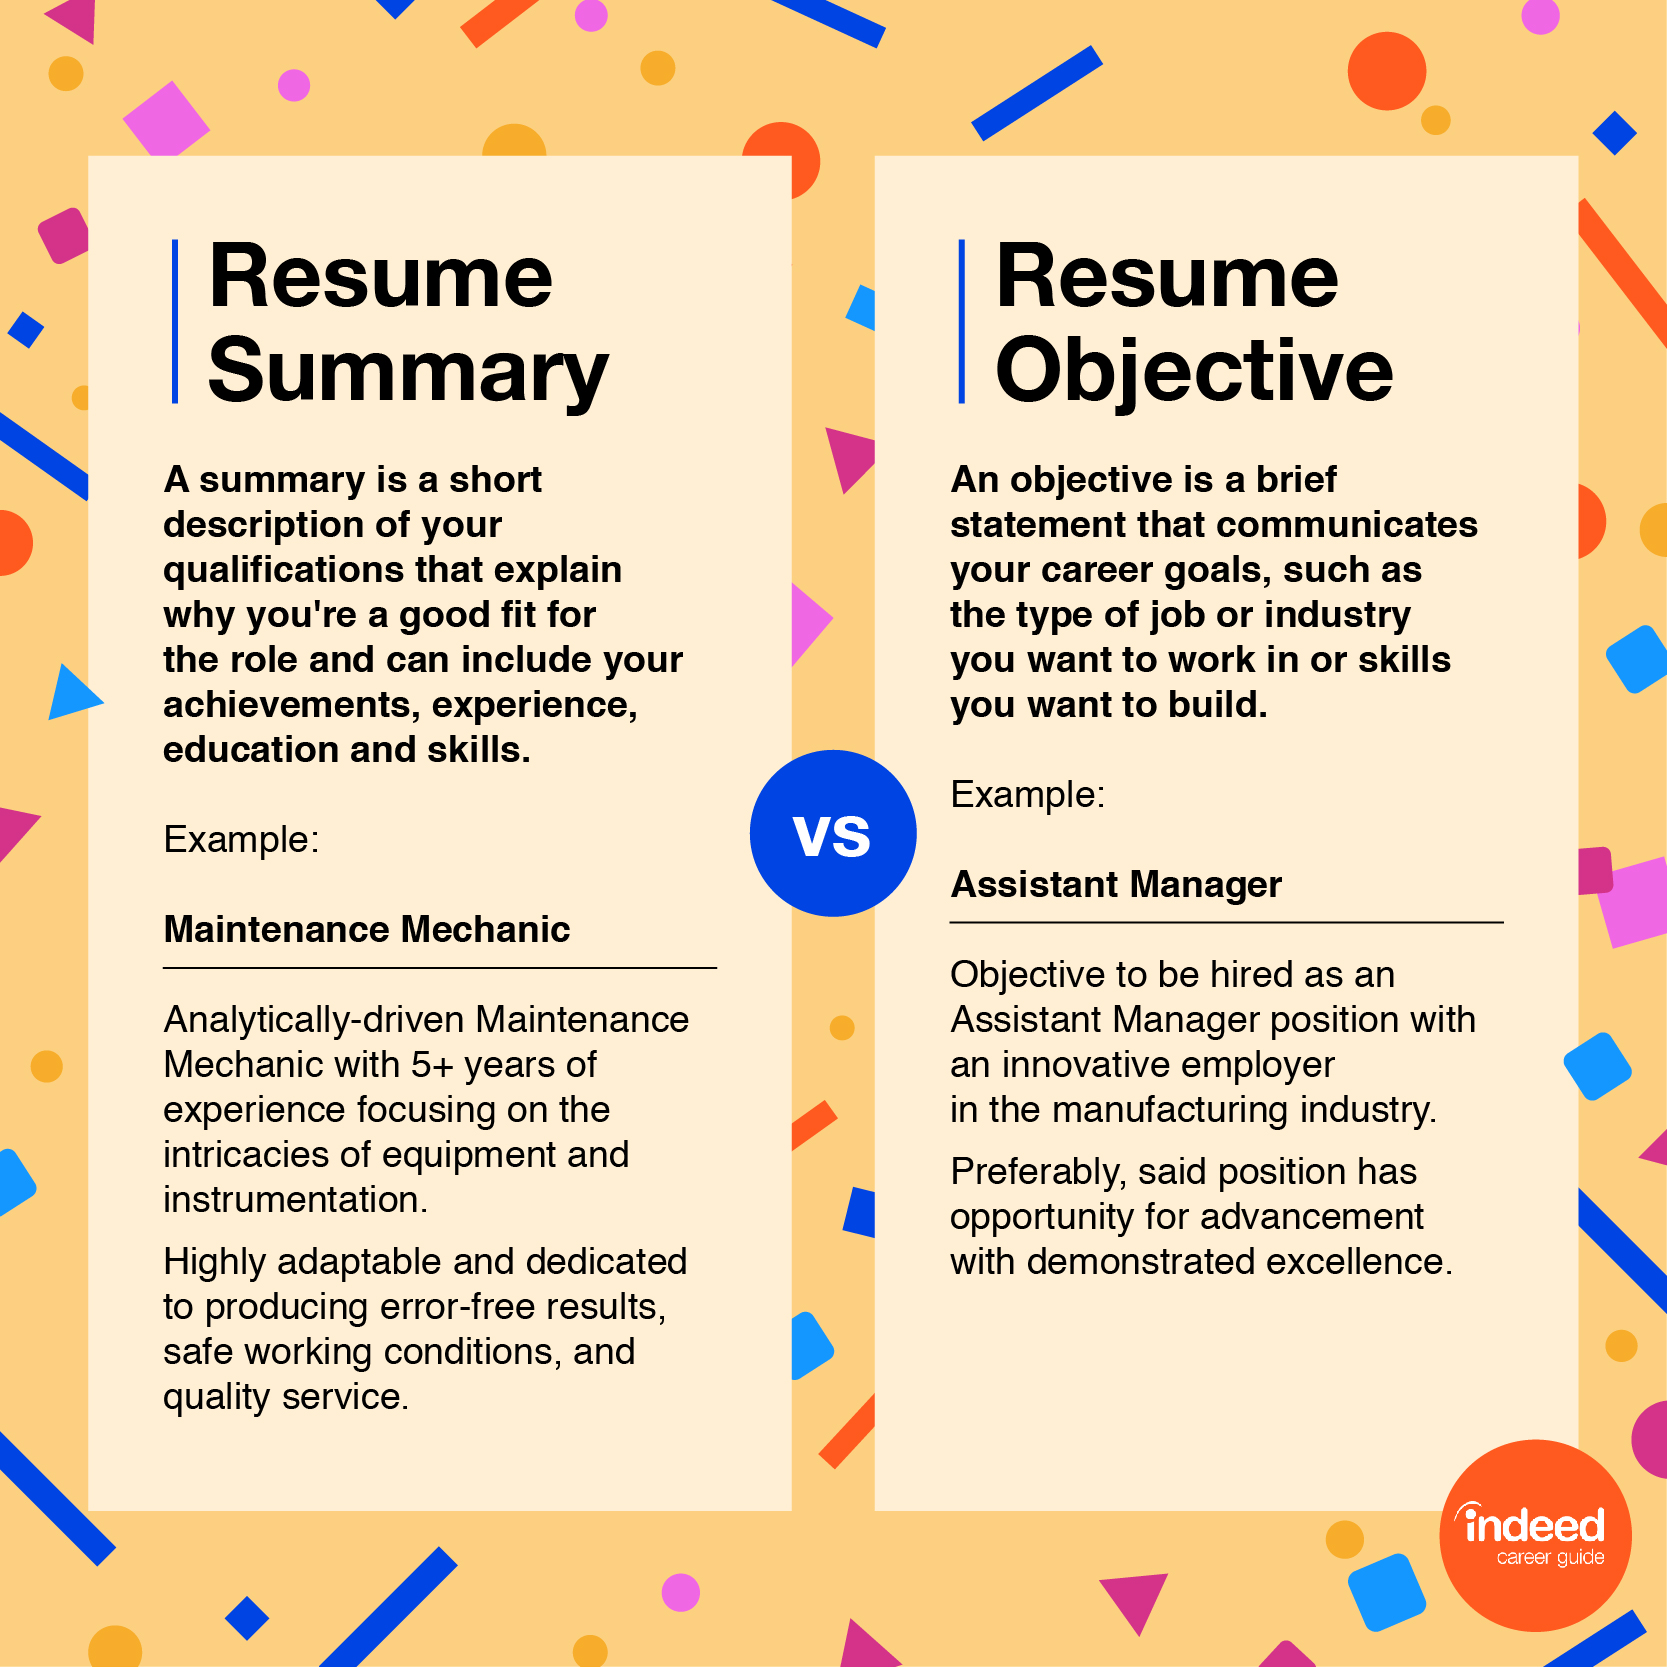 resume objectives examples and tips indeed objective transition career v4 cover sheet for Resume Resume Objective Transition Career